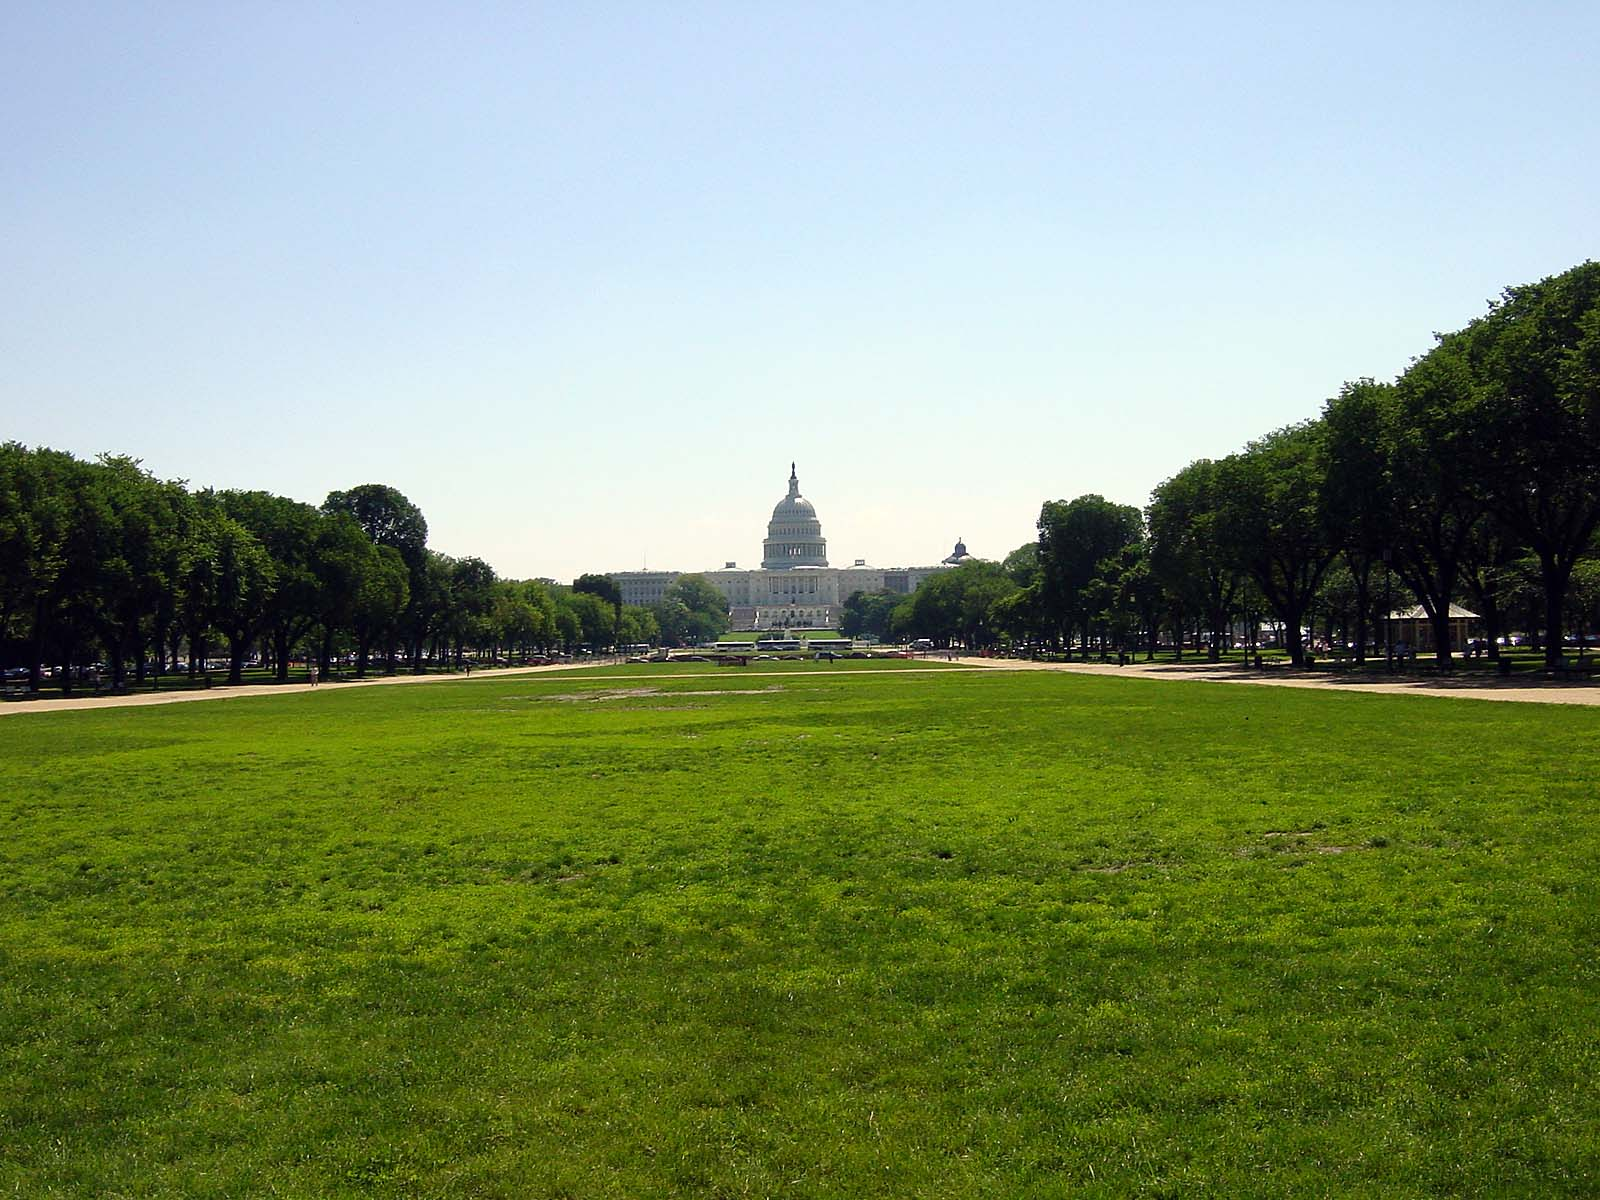 National Mall/U.S. Capitol